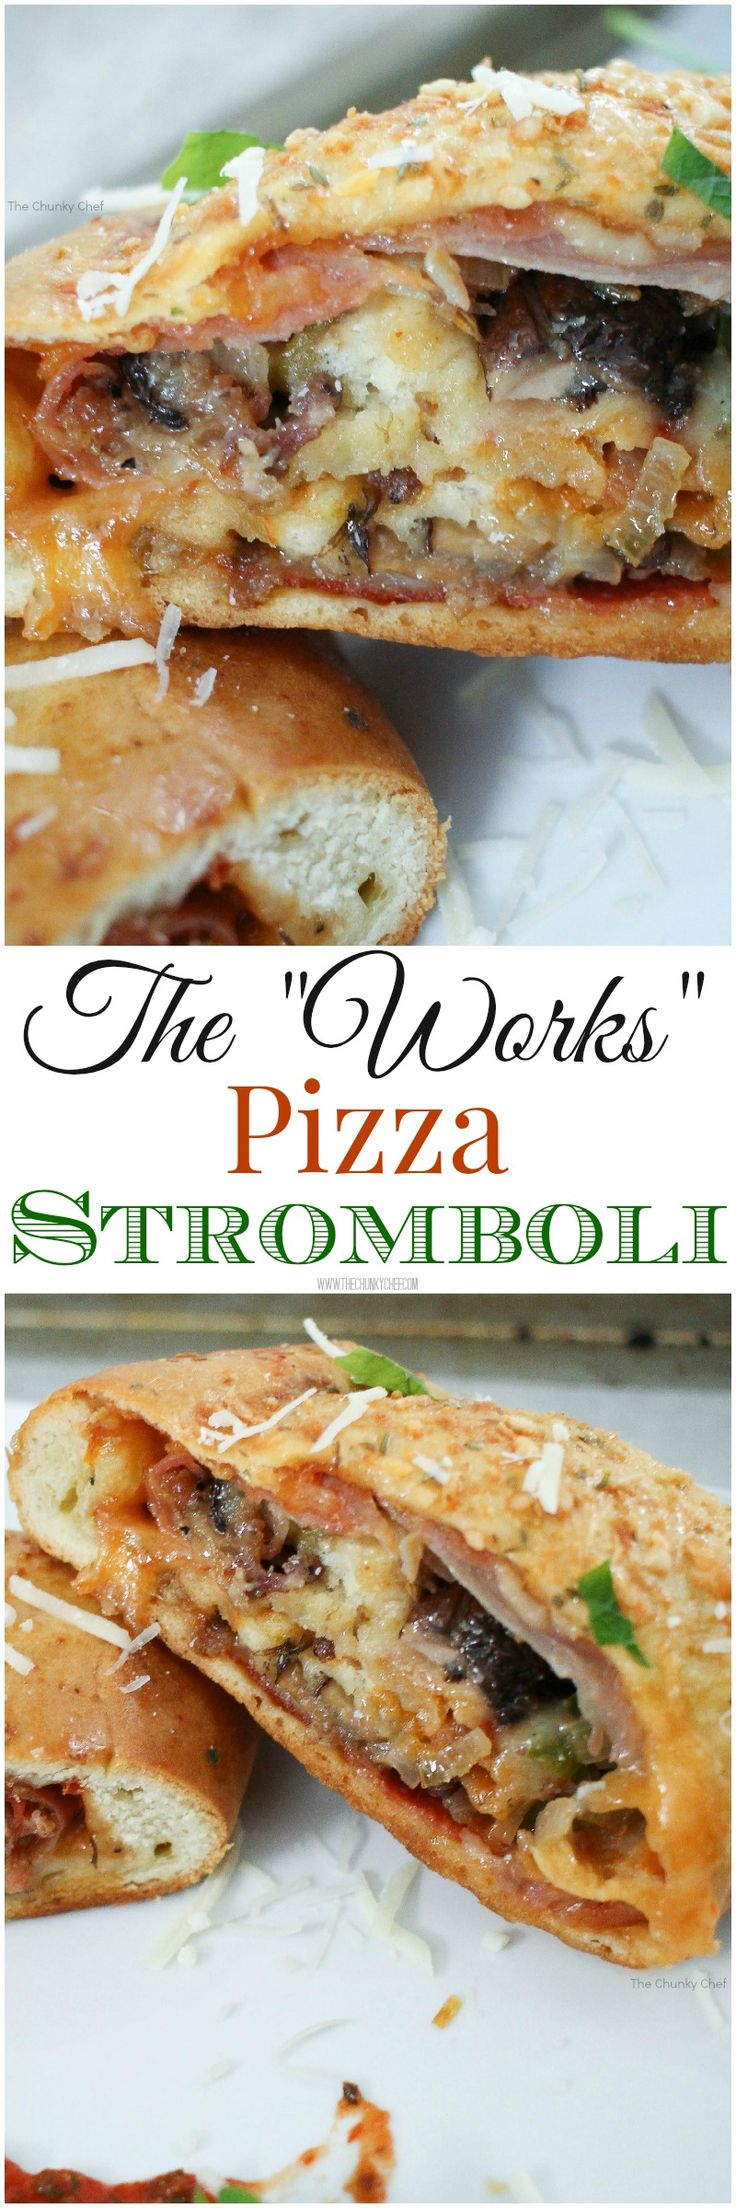 """The Works"" Pizza Stromboli - All the flavors of a works pizza, wrapped up in a delicious homemade crust, baked and seasoned to perfection!"